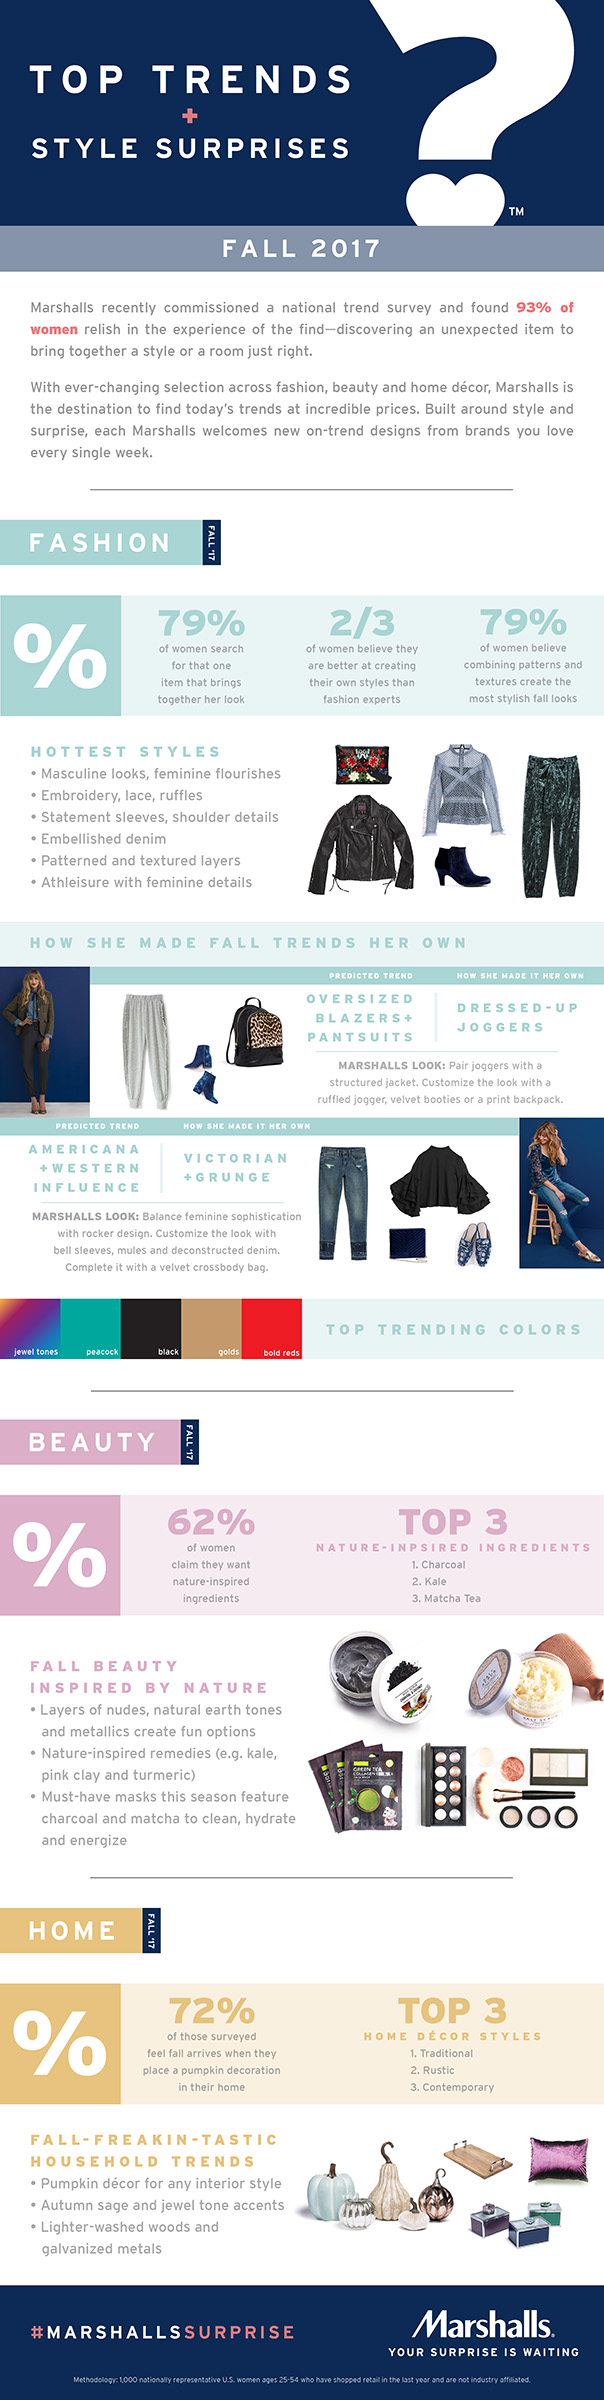 Marshalls identifies what women seek today across fashion, beauty and home as seasons shift in its first-ever seasonal trend report.